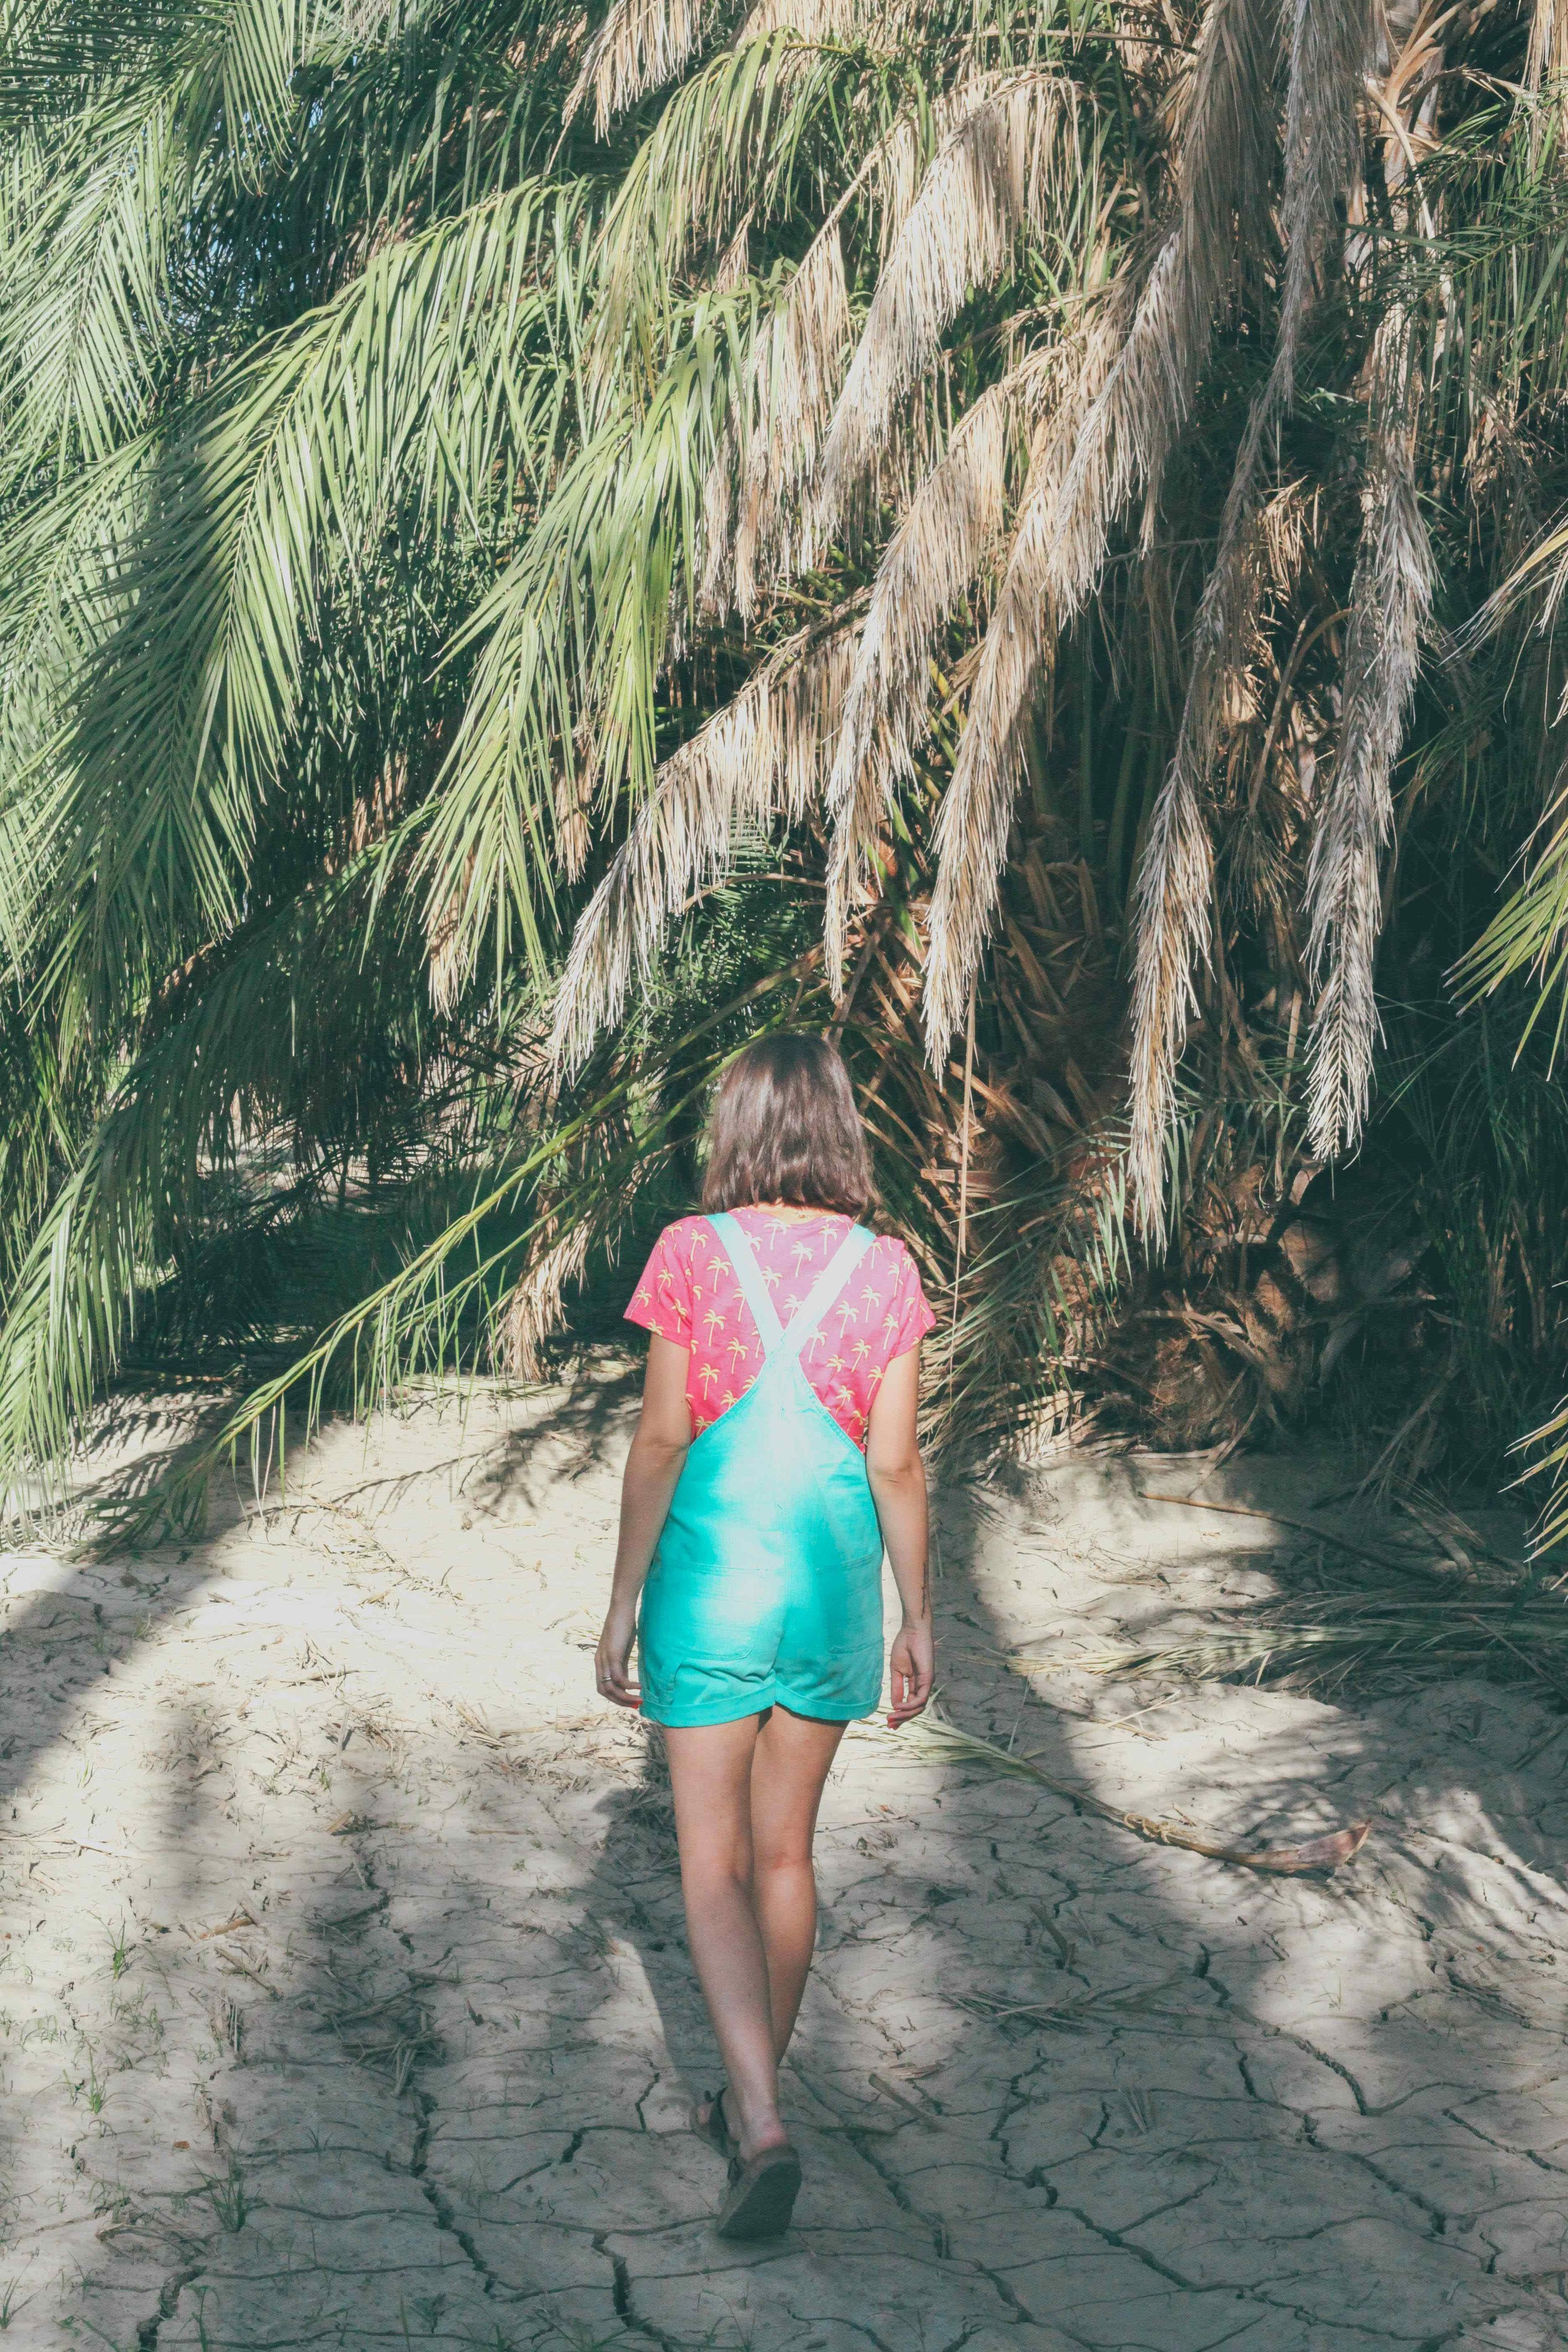 summer_palmtree_overalls_style_fashion_treasuresandtravels-22.jpg